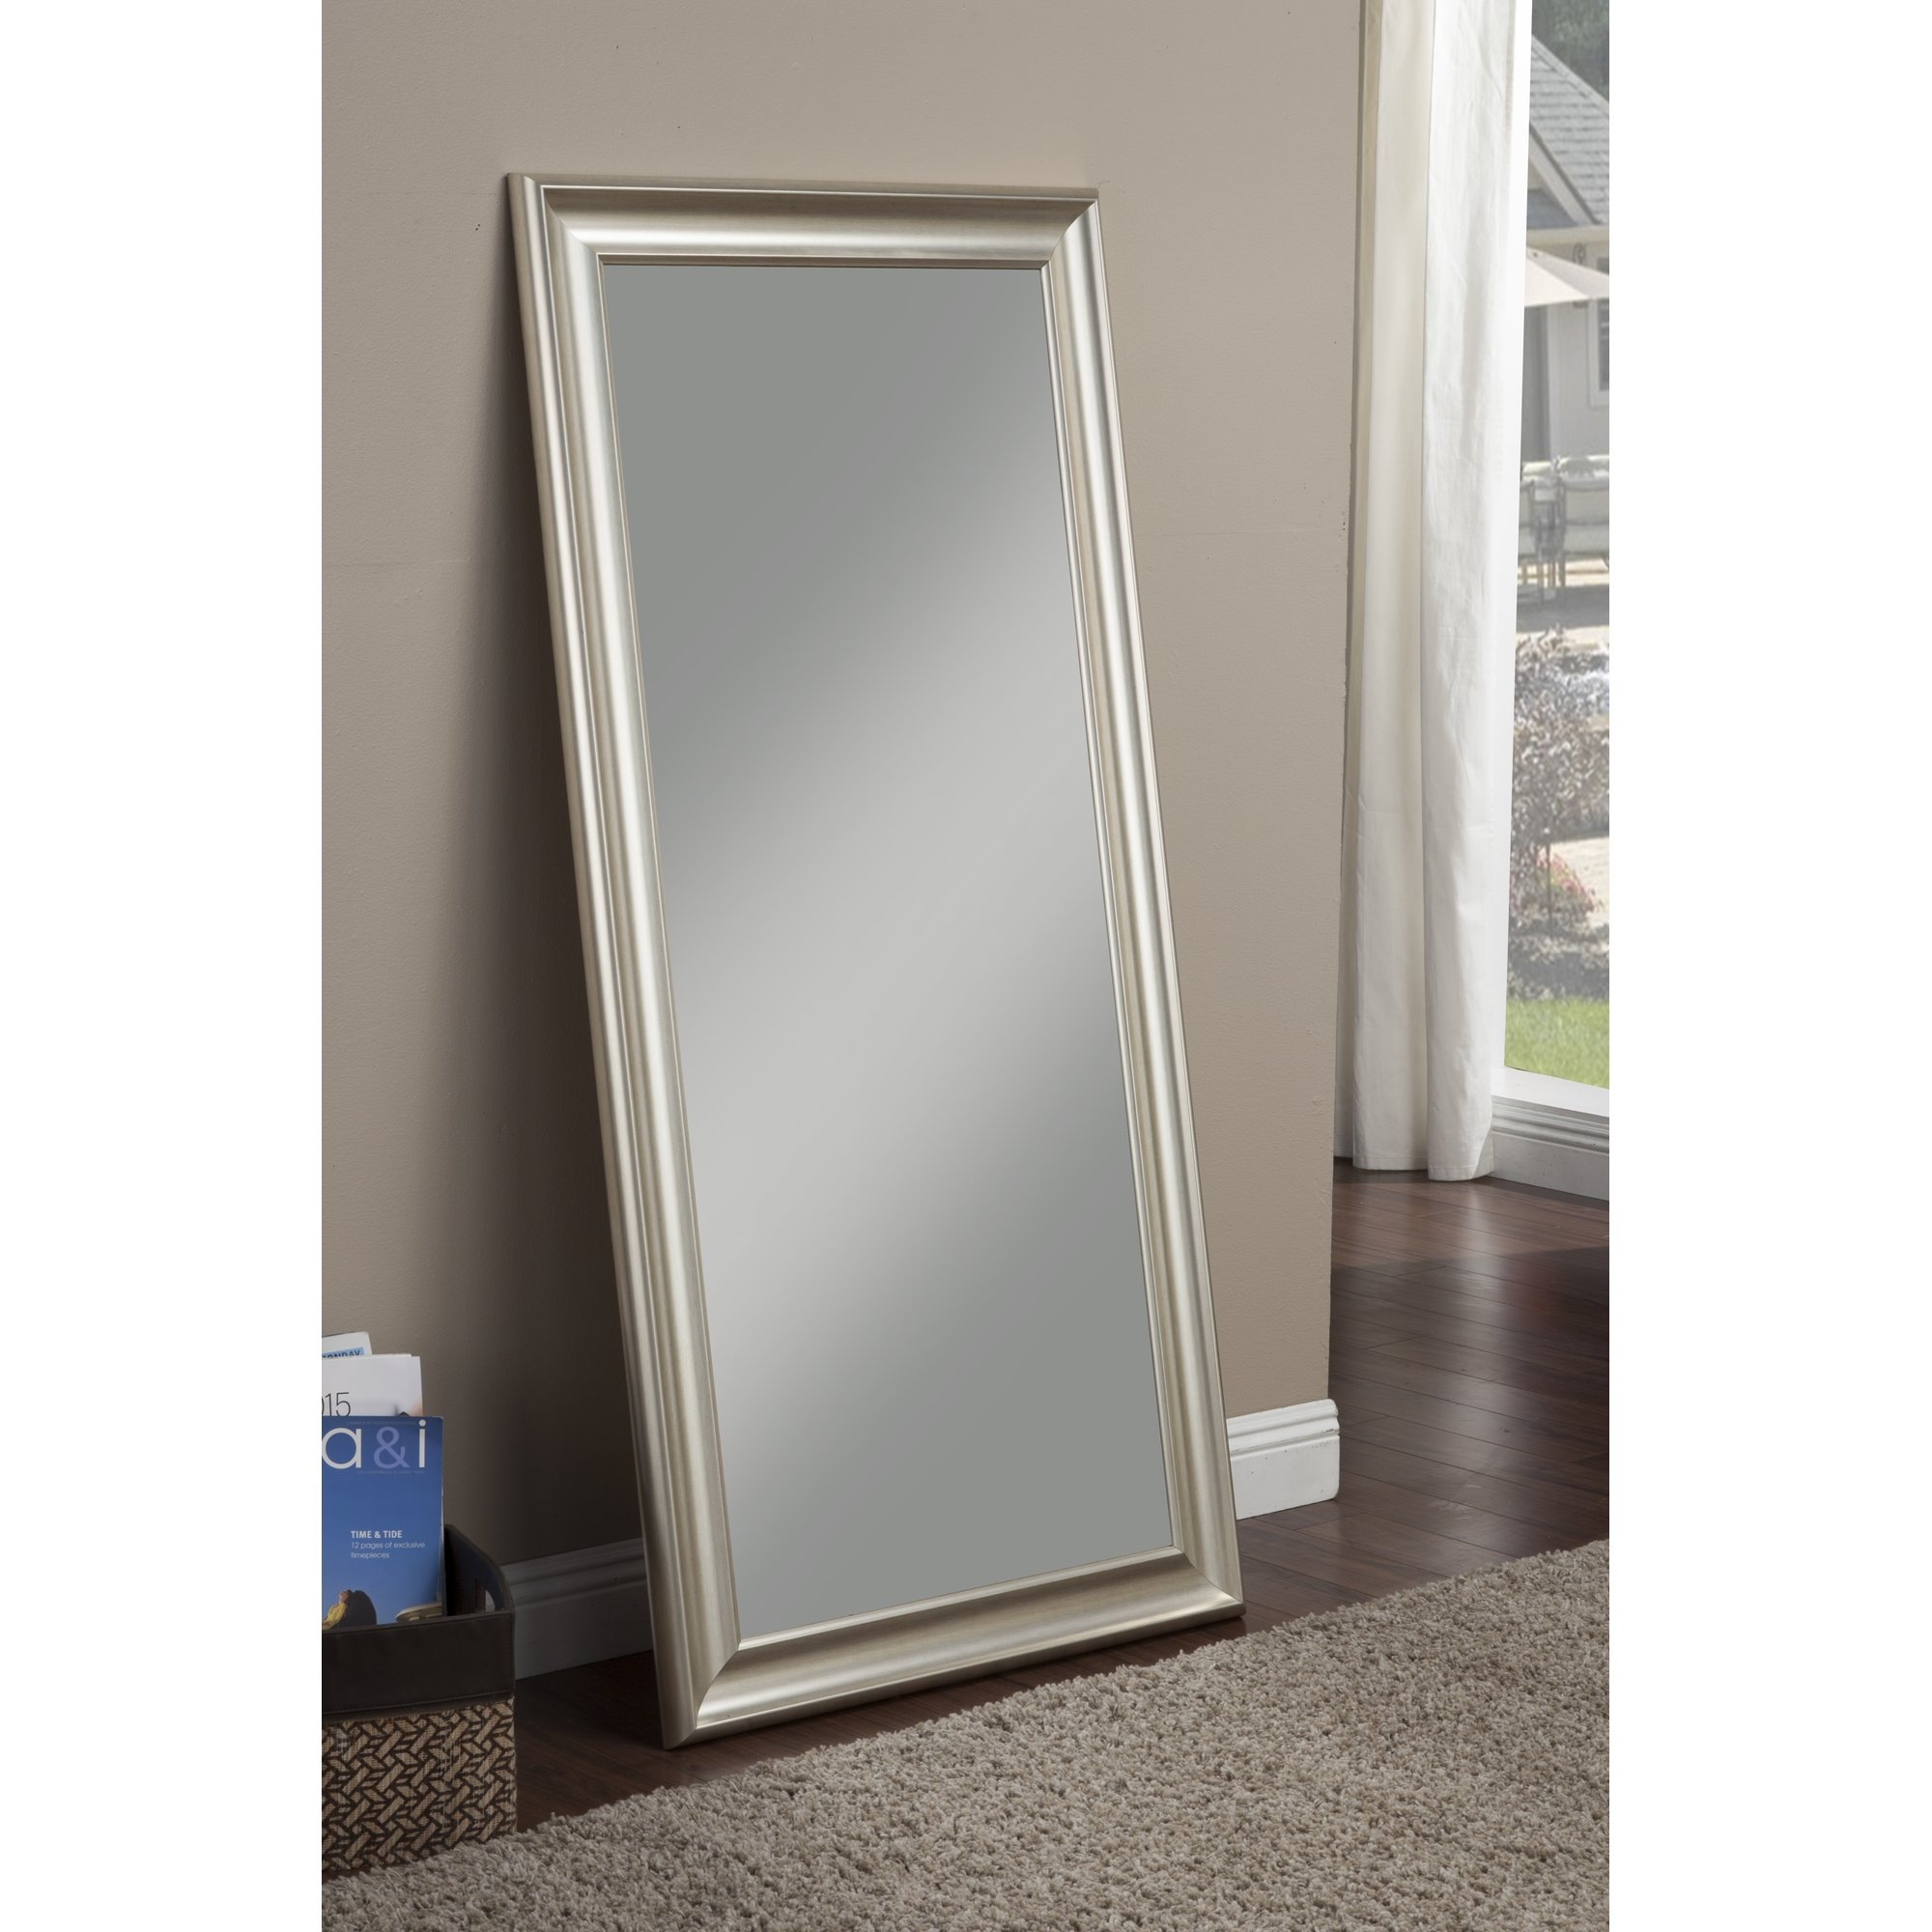 wall mirrors youll love wayfair with regard to chrome floor mirror  - wall mirrors youll love wayfair with regard to chrome floor mirror (photo of